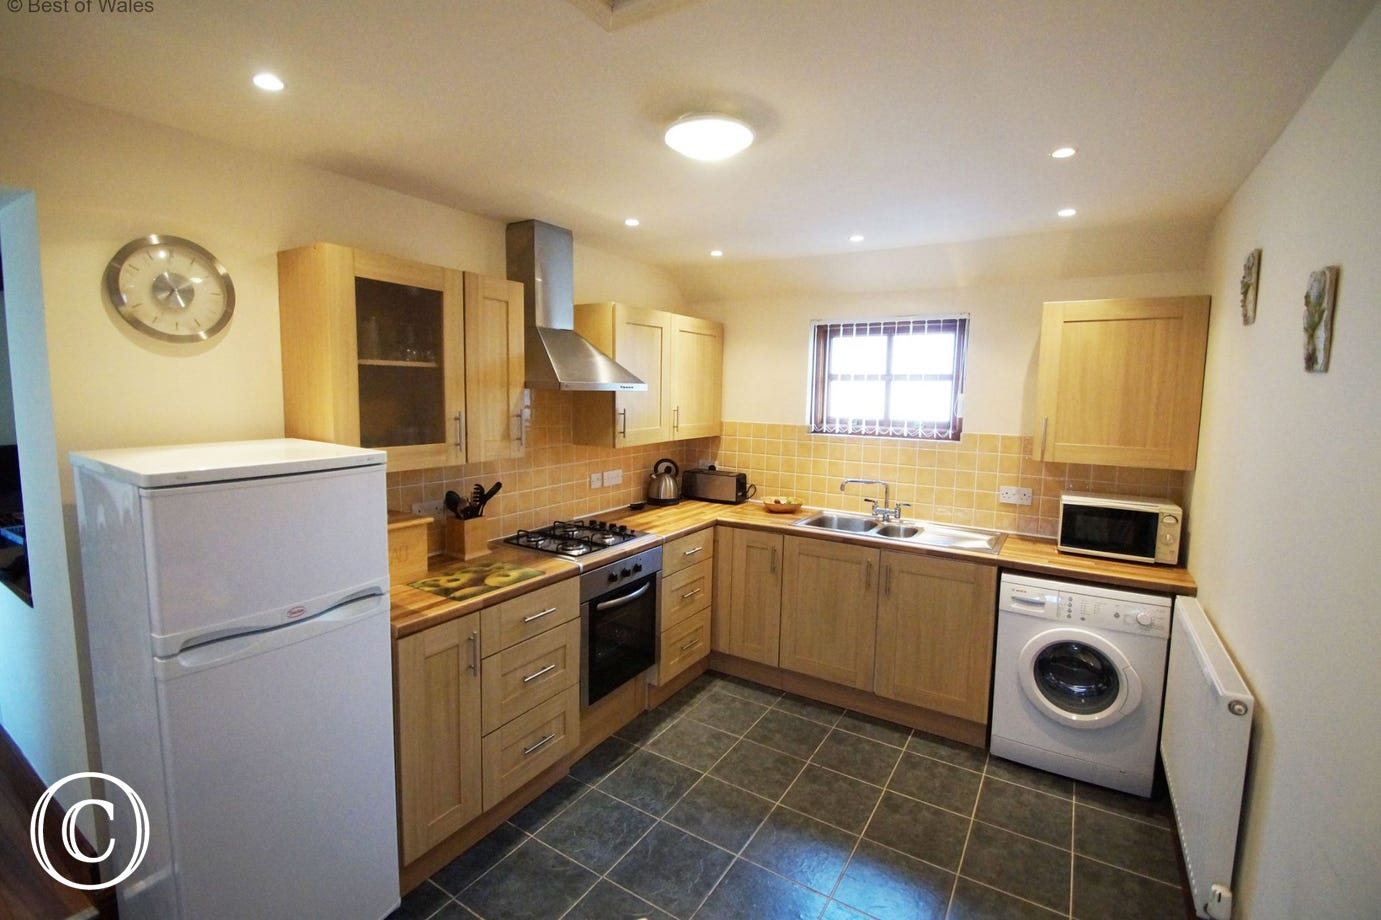 Fully equipped kitchen at this Pembrokeshire holiday cottage